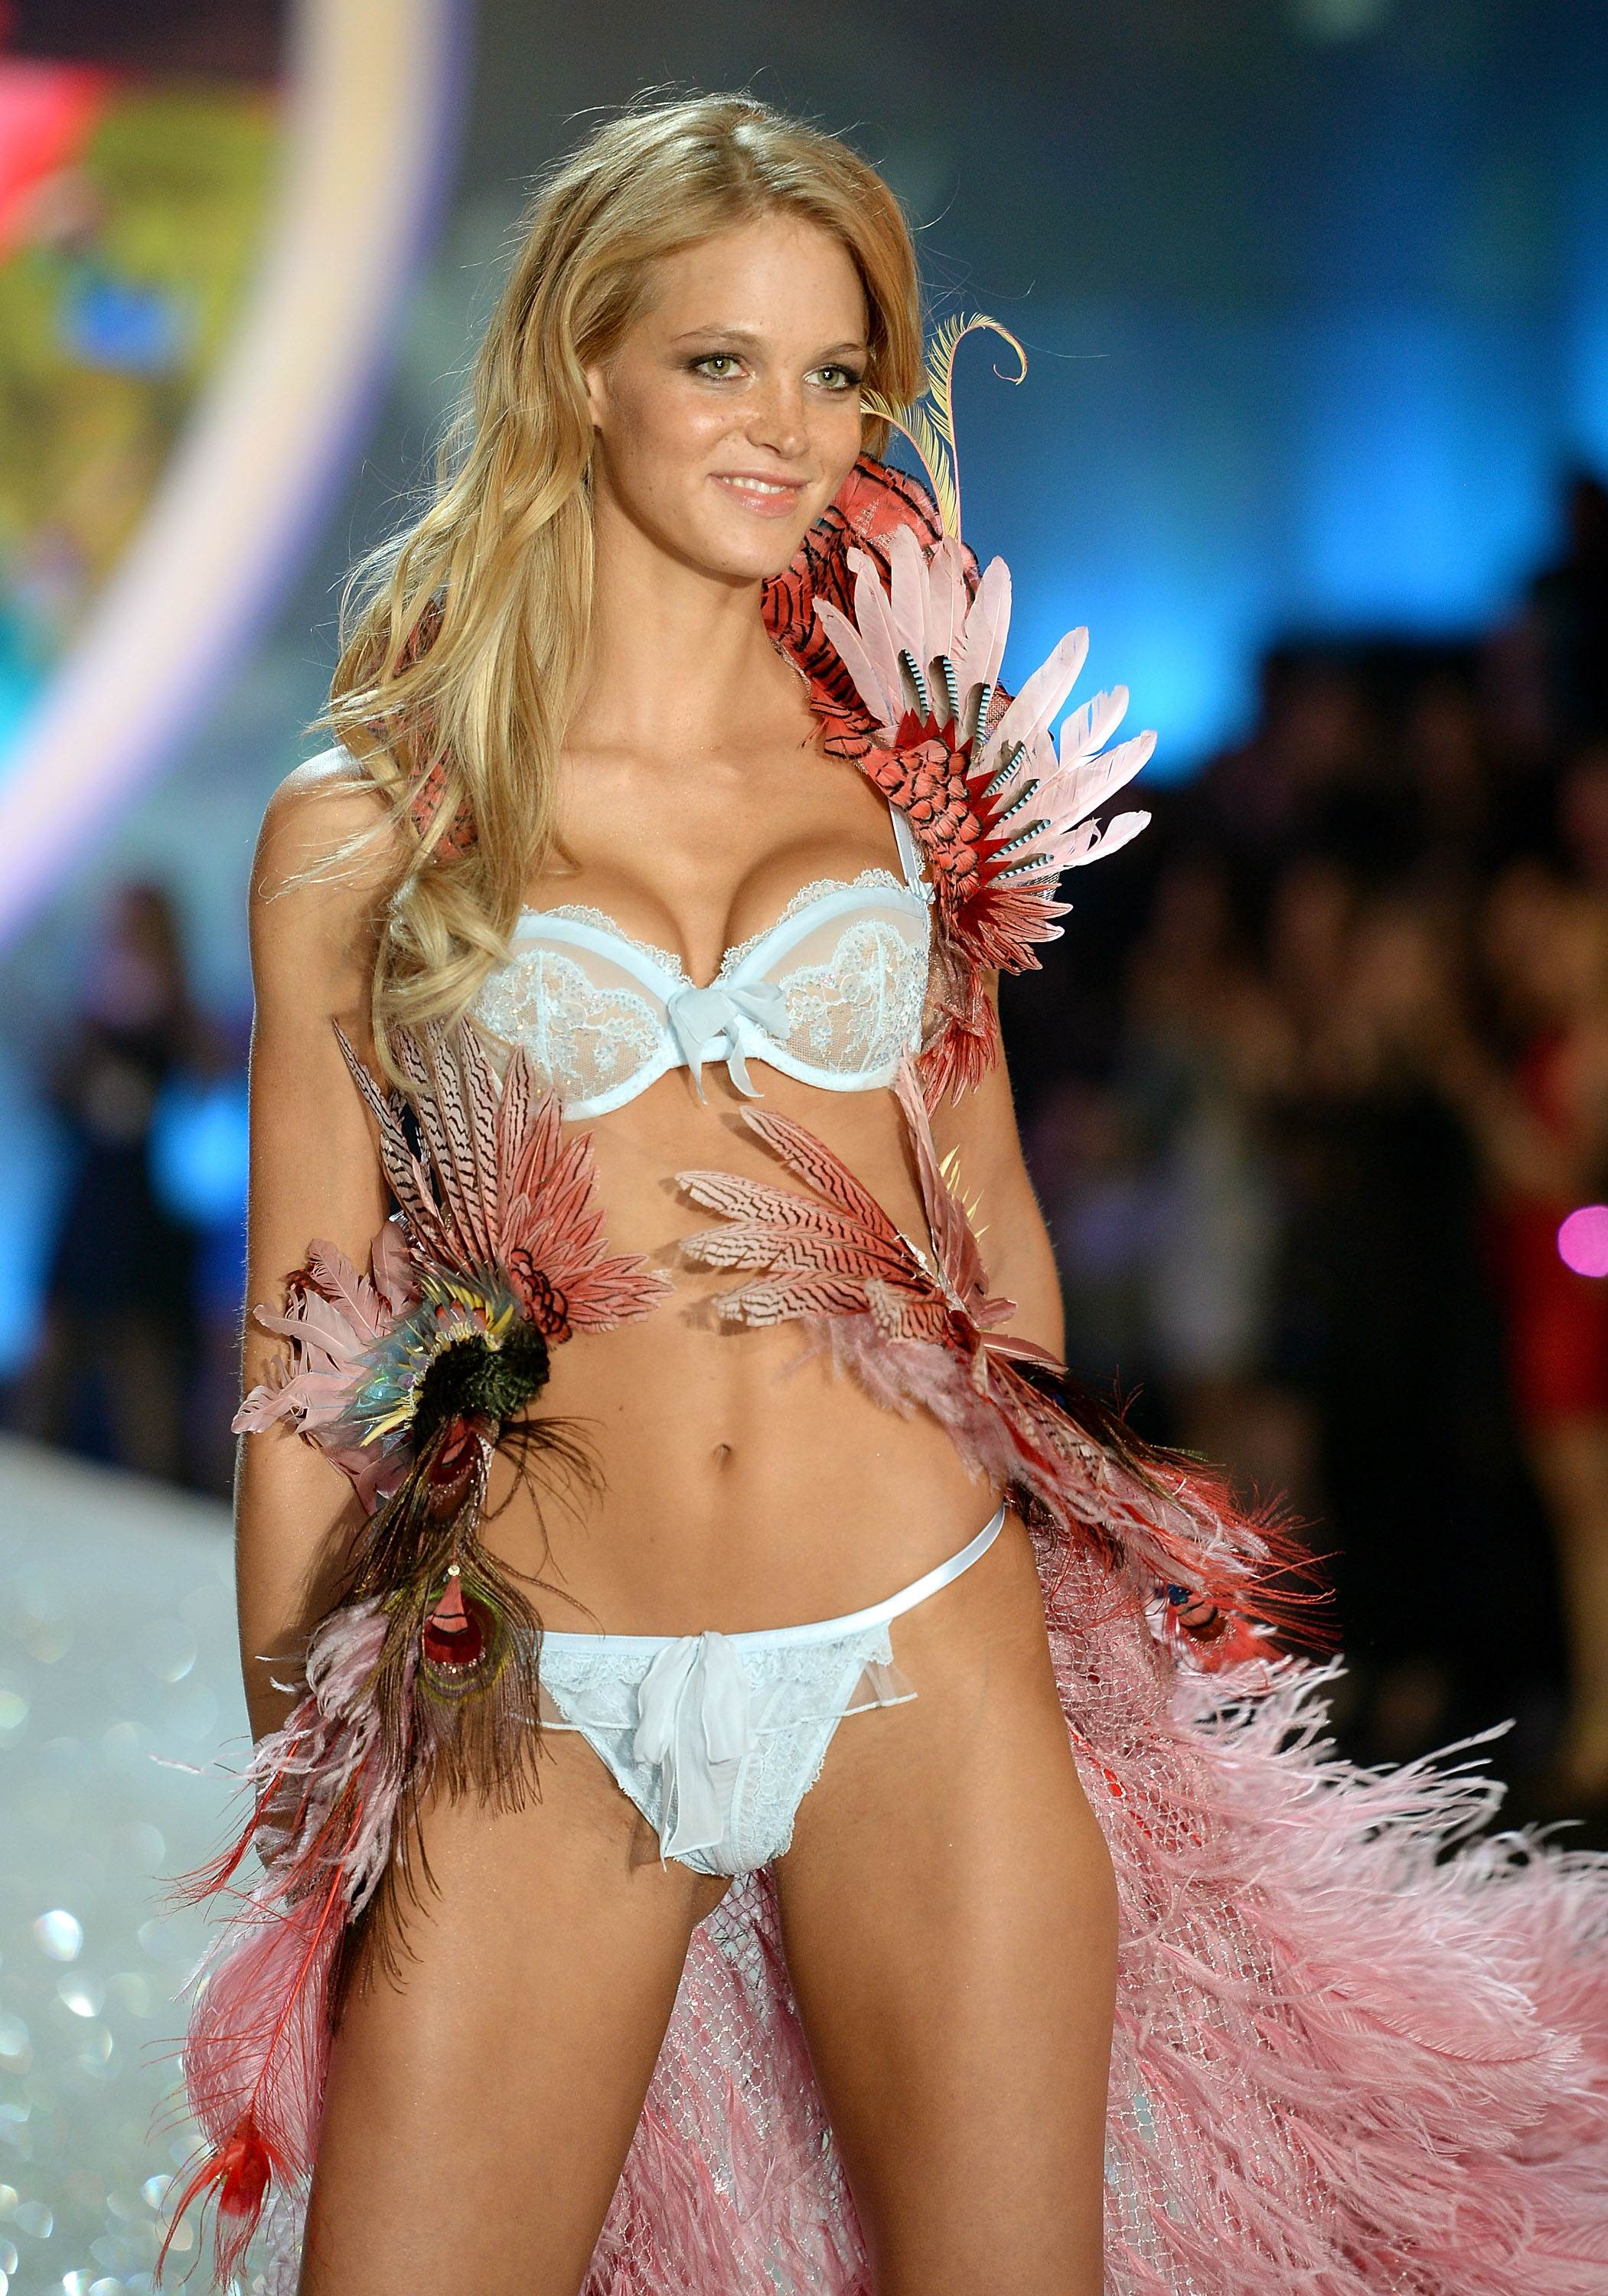 Erin Heatherton Victorias Secret Fashion Show Runway 2013 03 Gotceleb